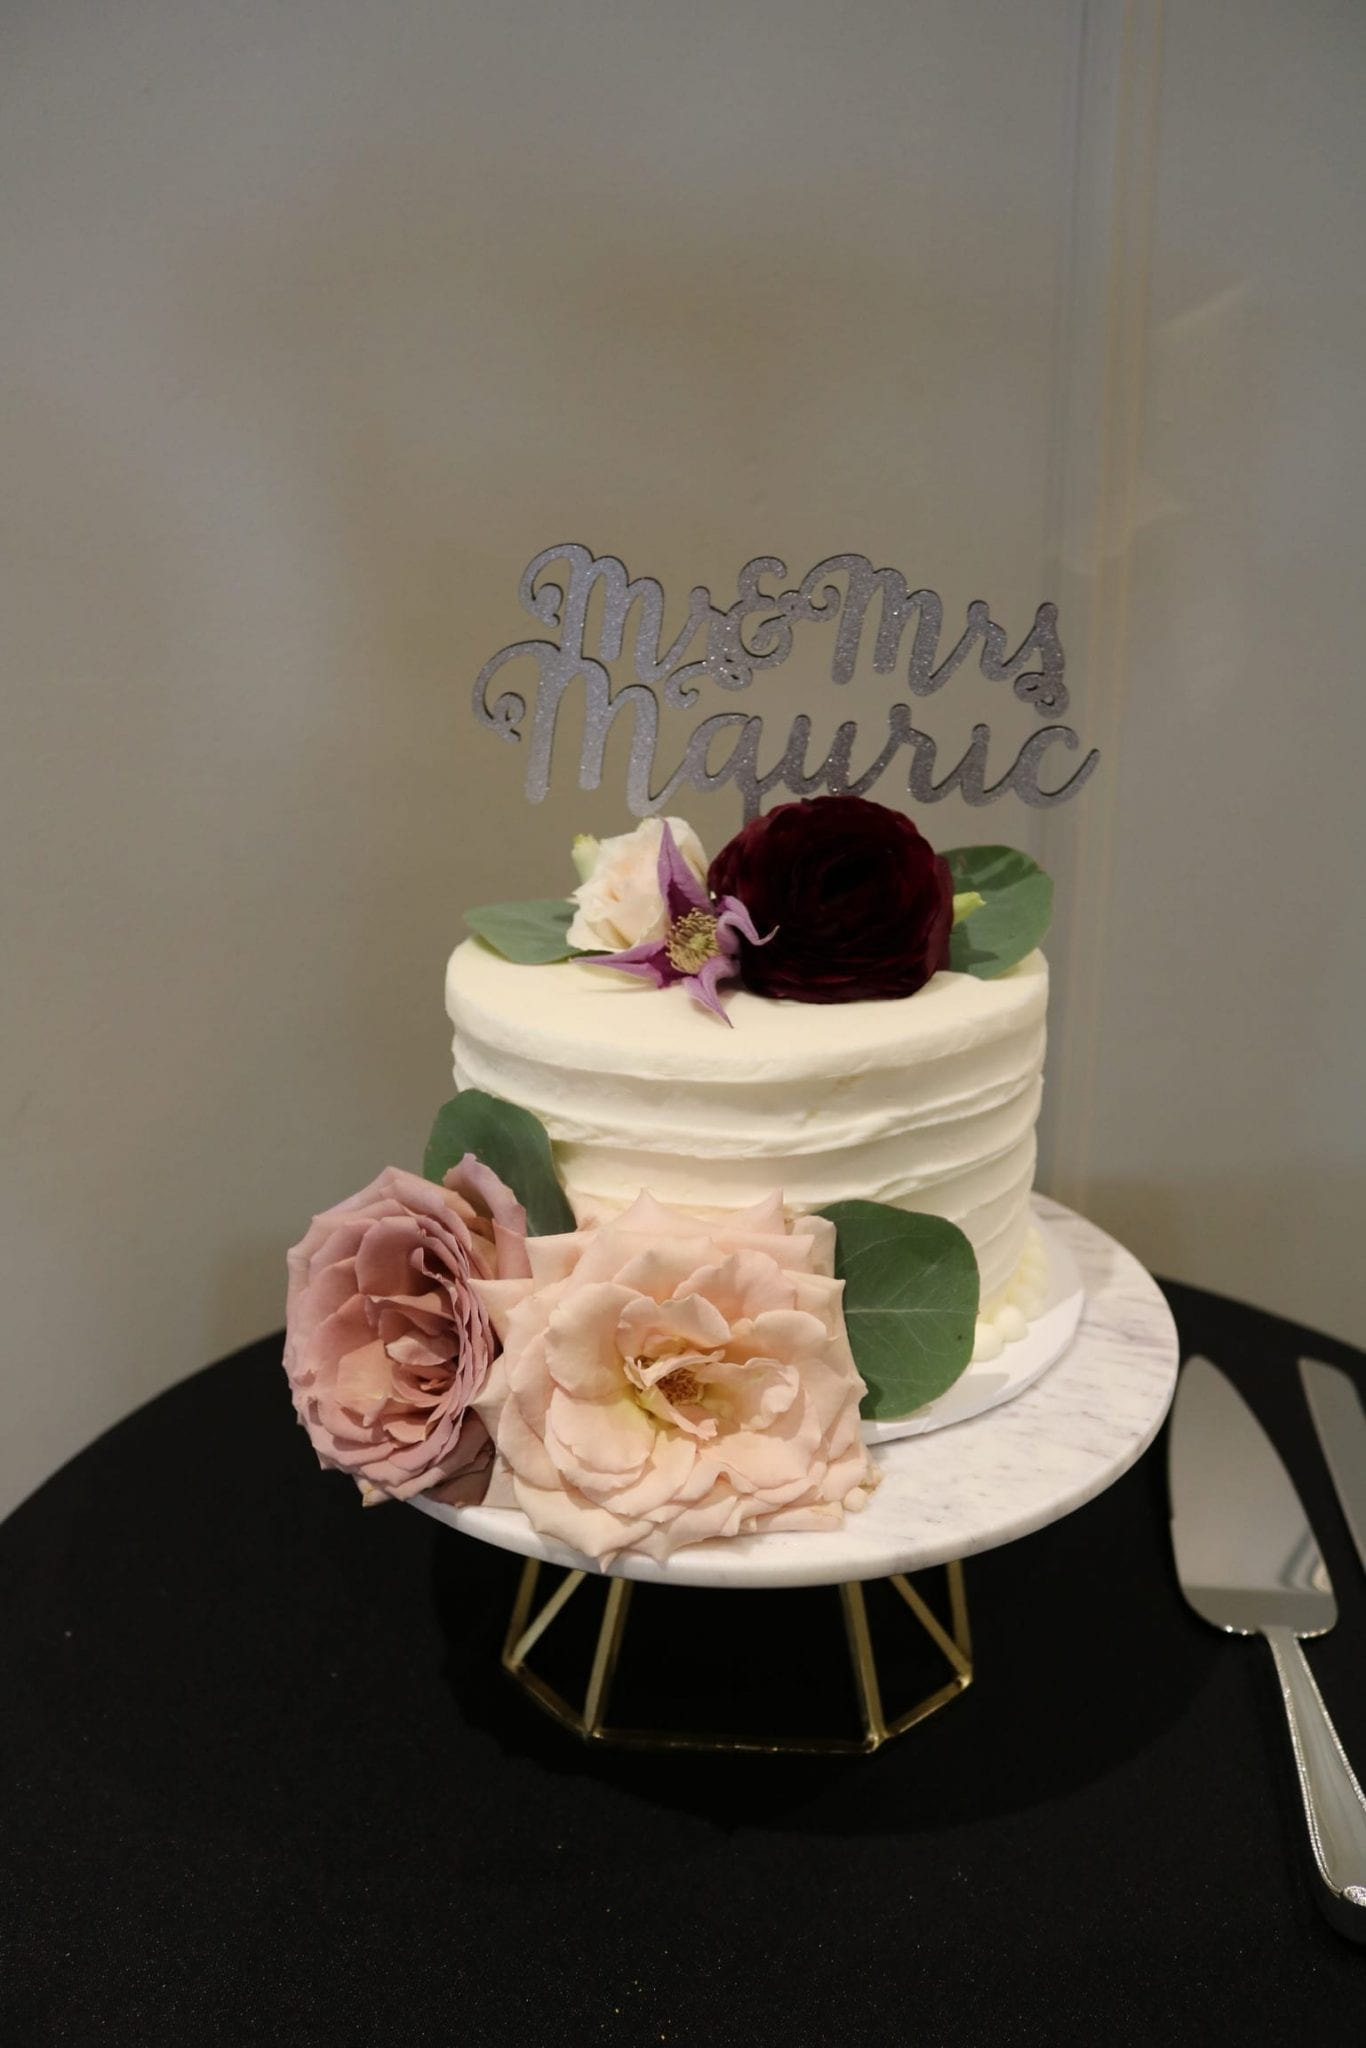 Wedding Cutting Cake with Fresh Flowers | 3 Sweet Girls Cakery